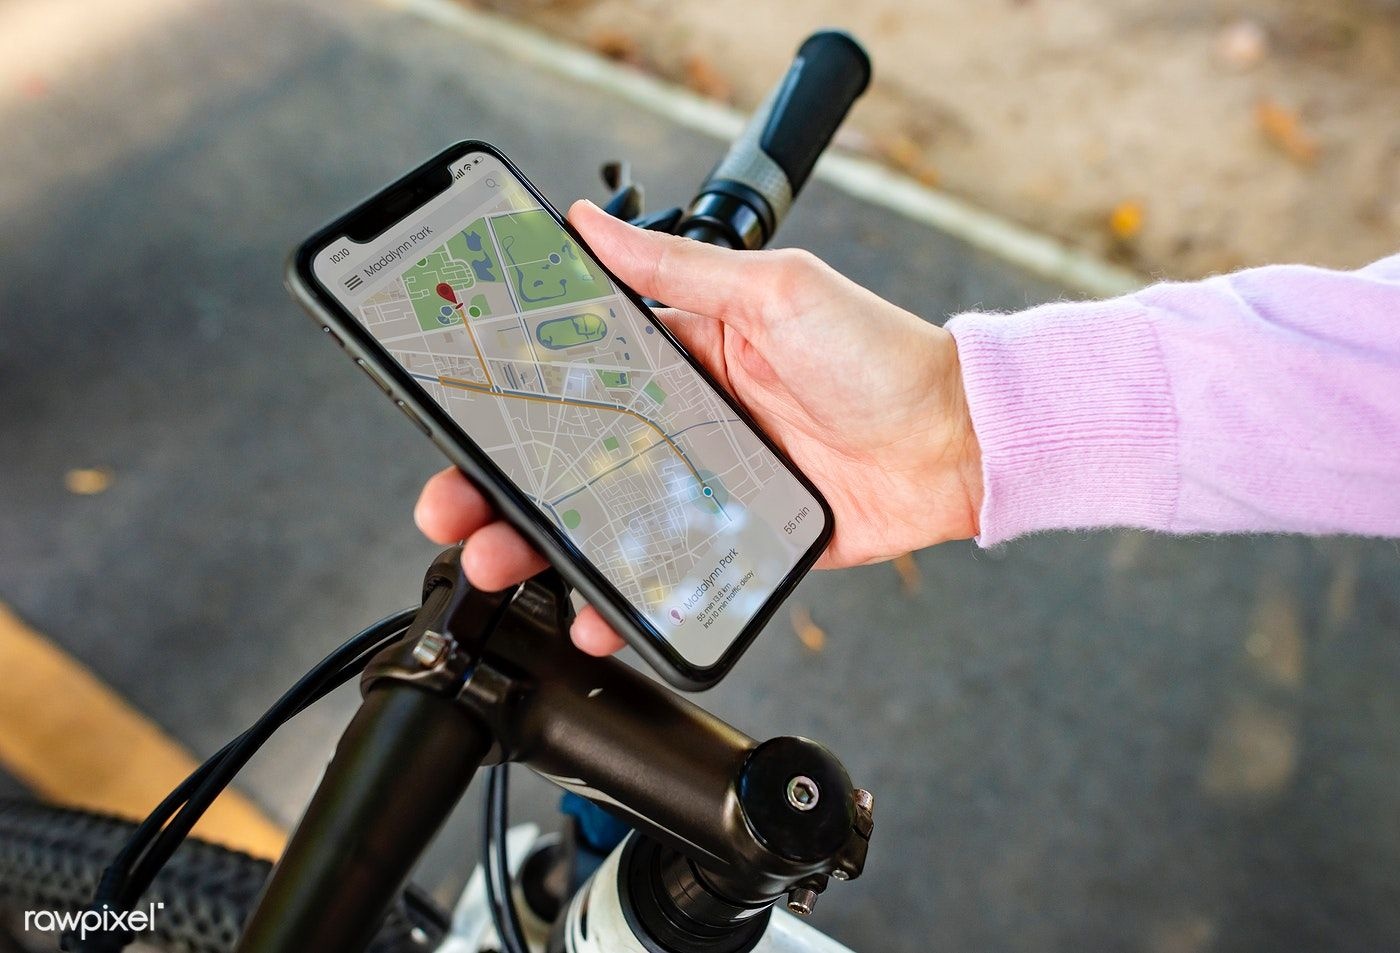 Download premium image of Navigation map on a smartphone